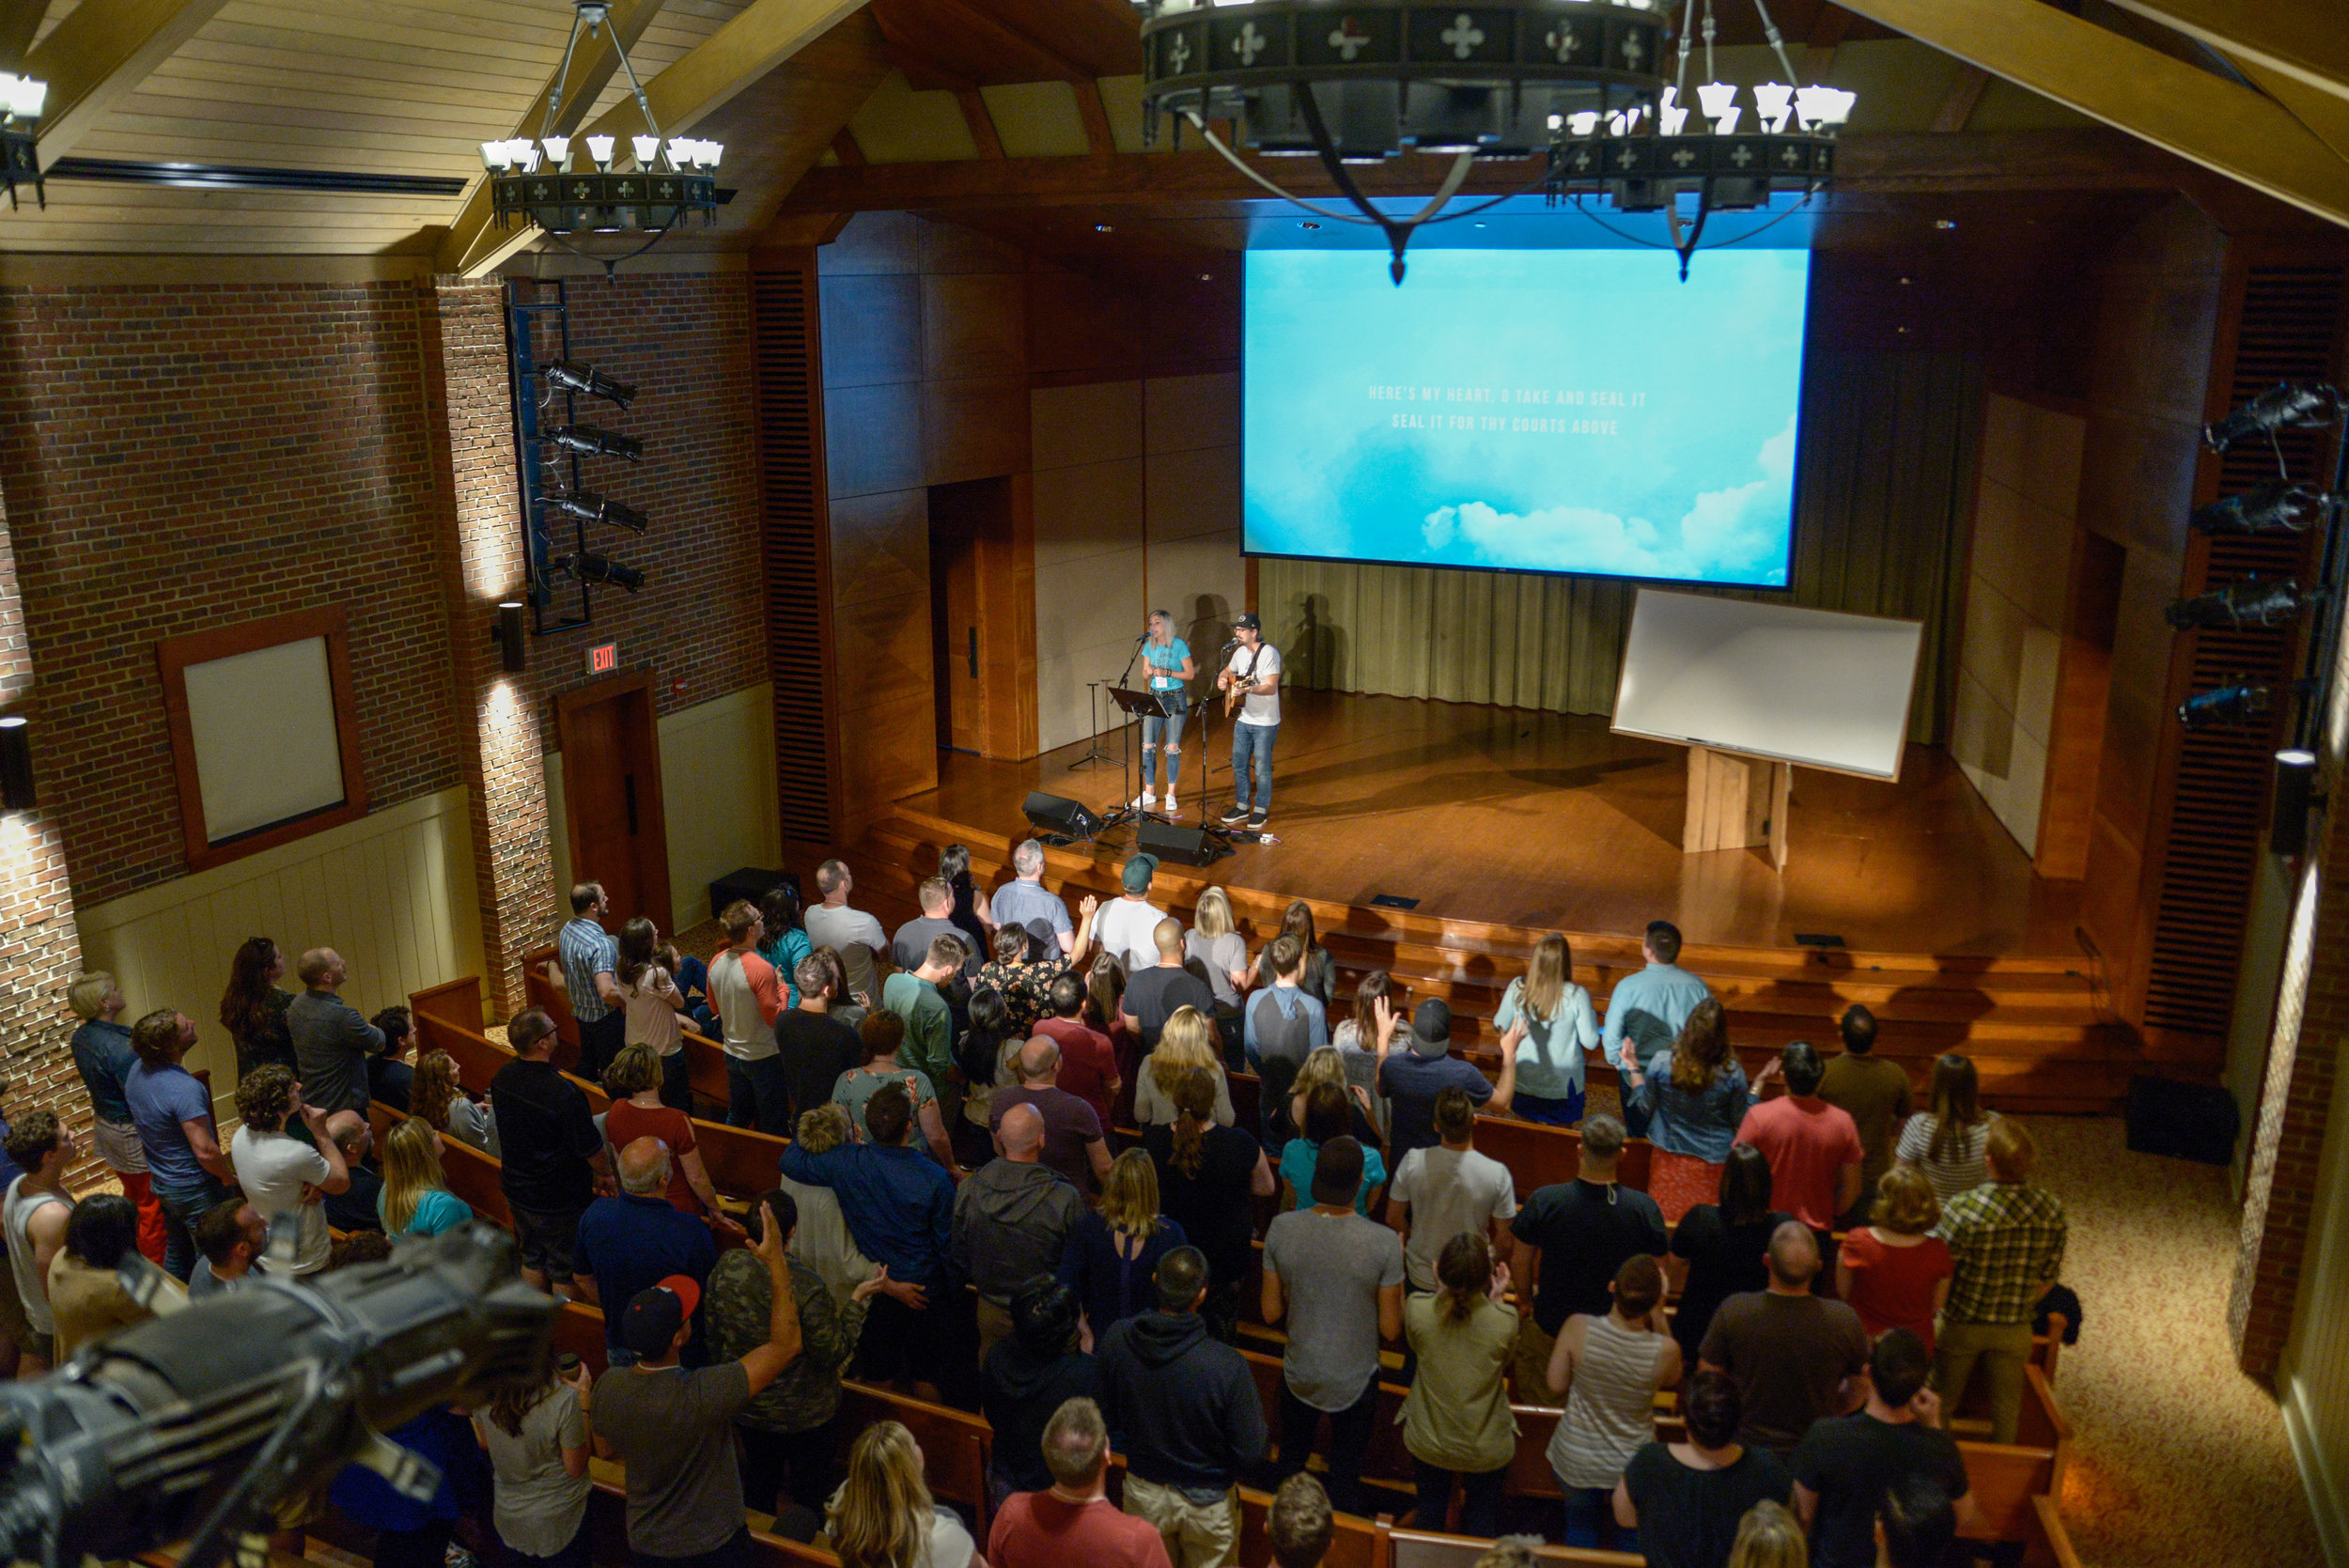 There's nothing better than God's children gathered to worship His name. Photo credit - Allen and Carol Photography